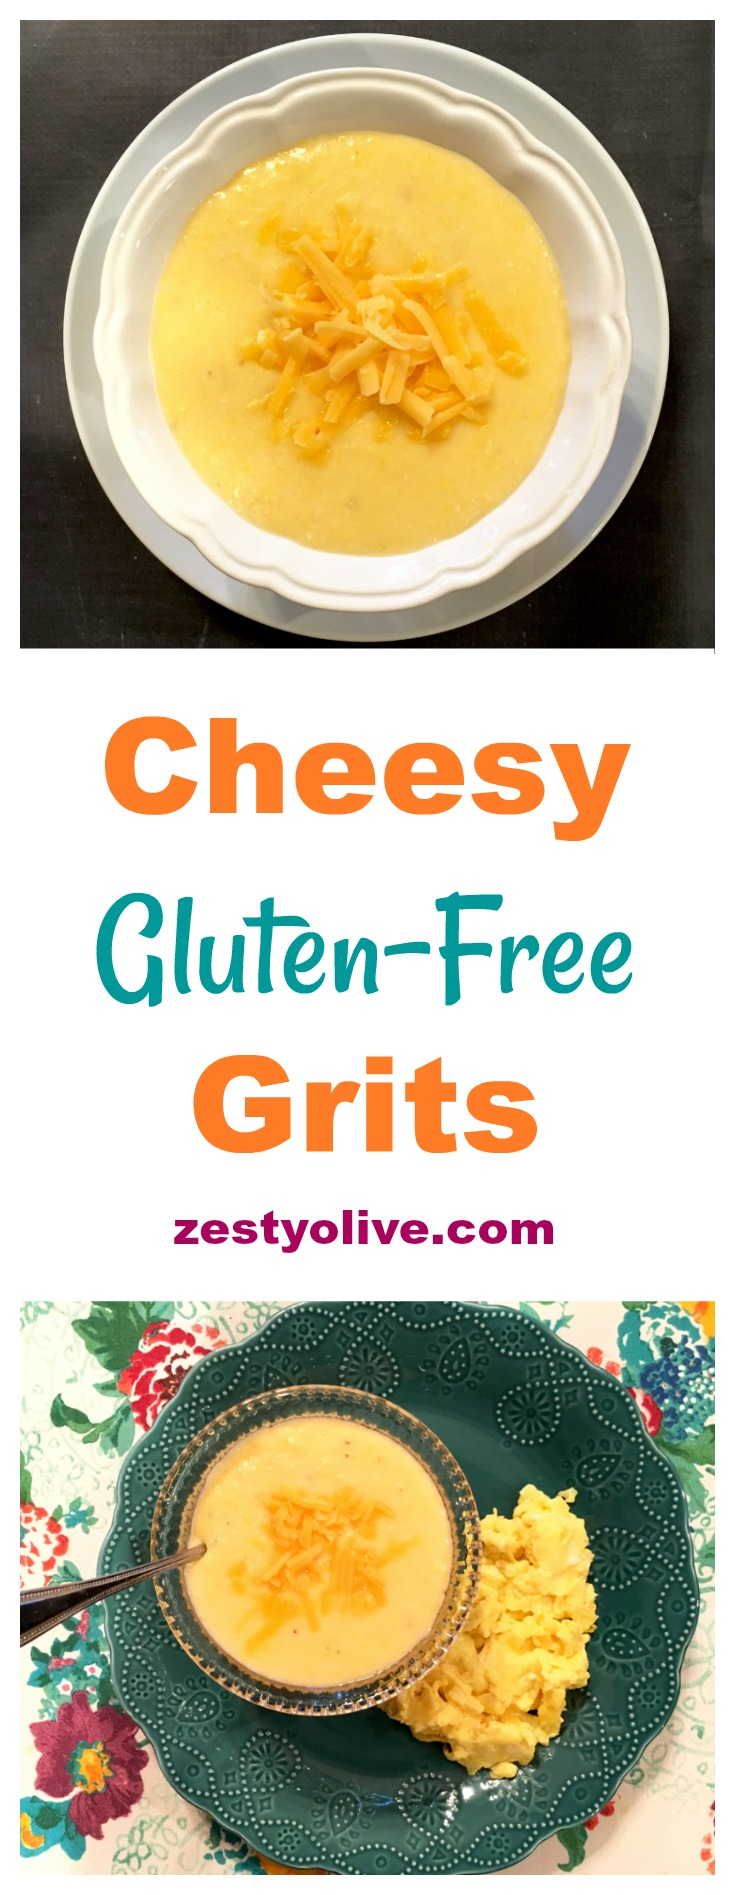 Calling all southerners, cheese lovers, and grits lovers: behold; here's the gluten-free cheesy grits recipe that you've been craving.